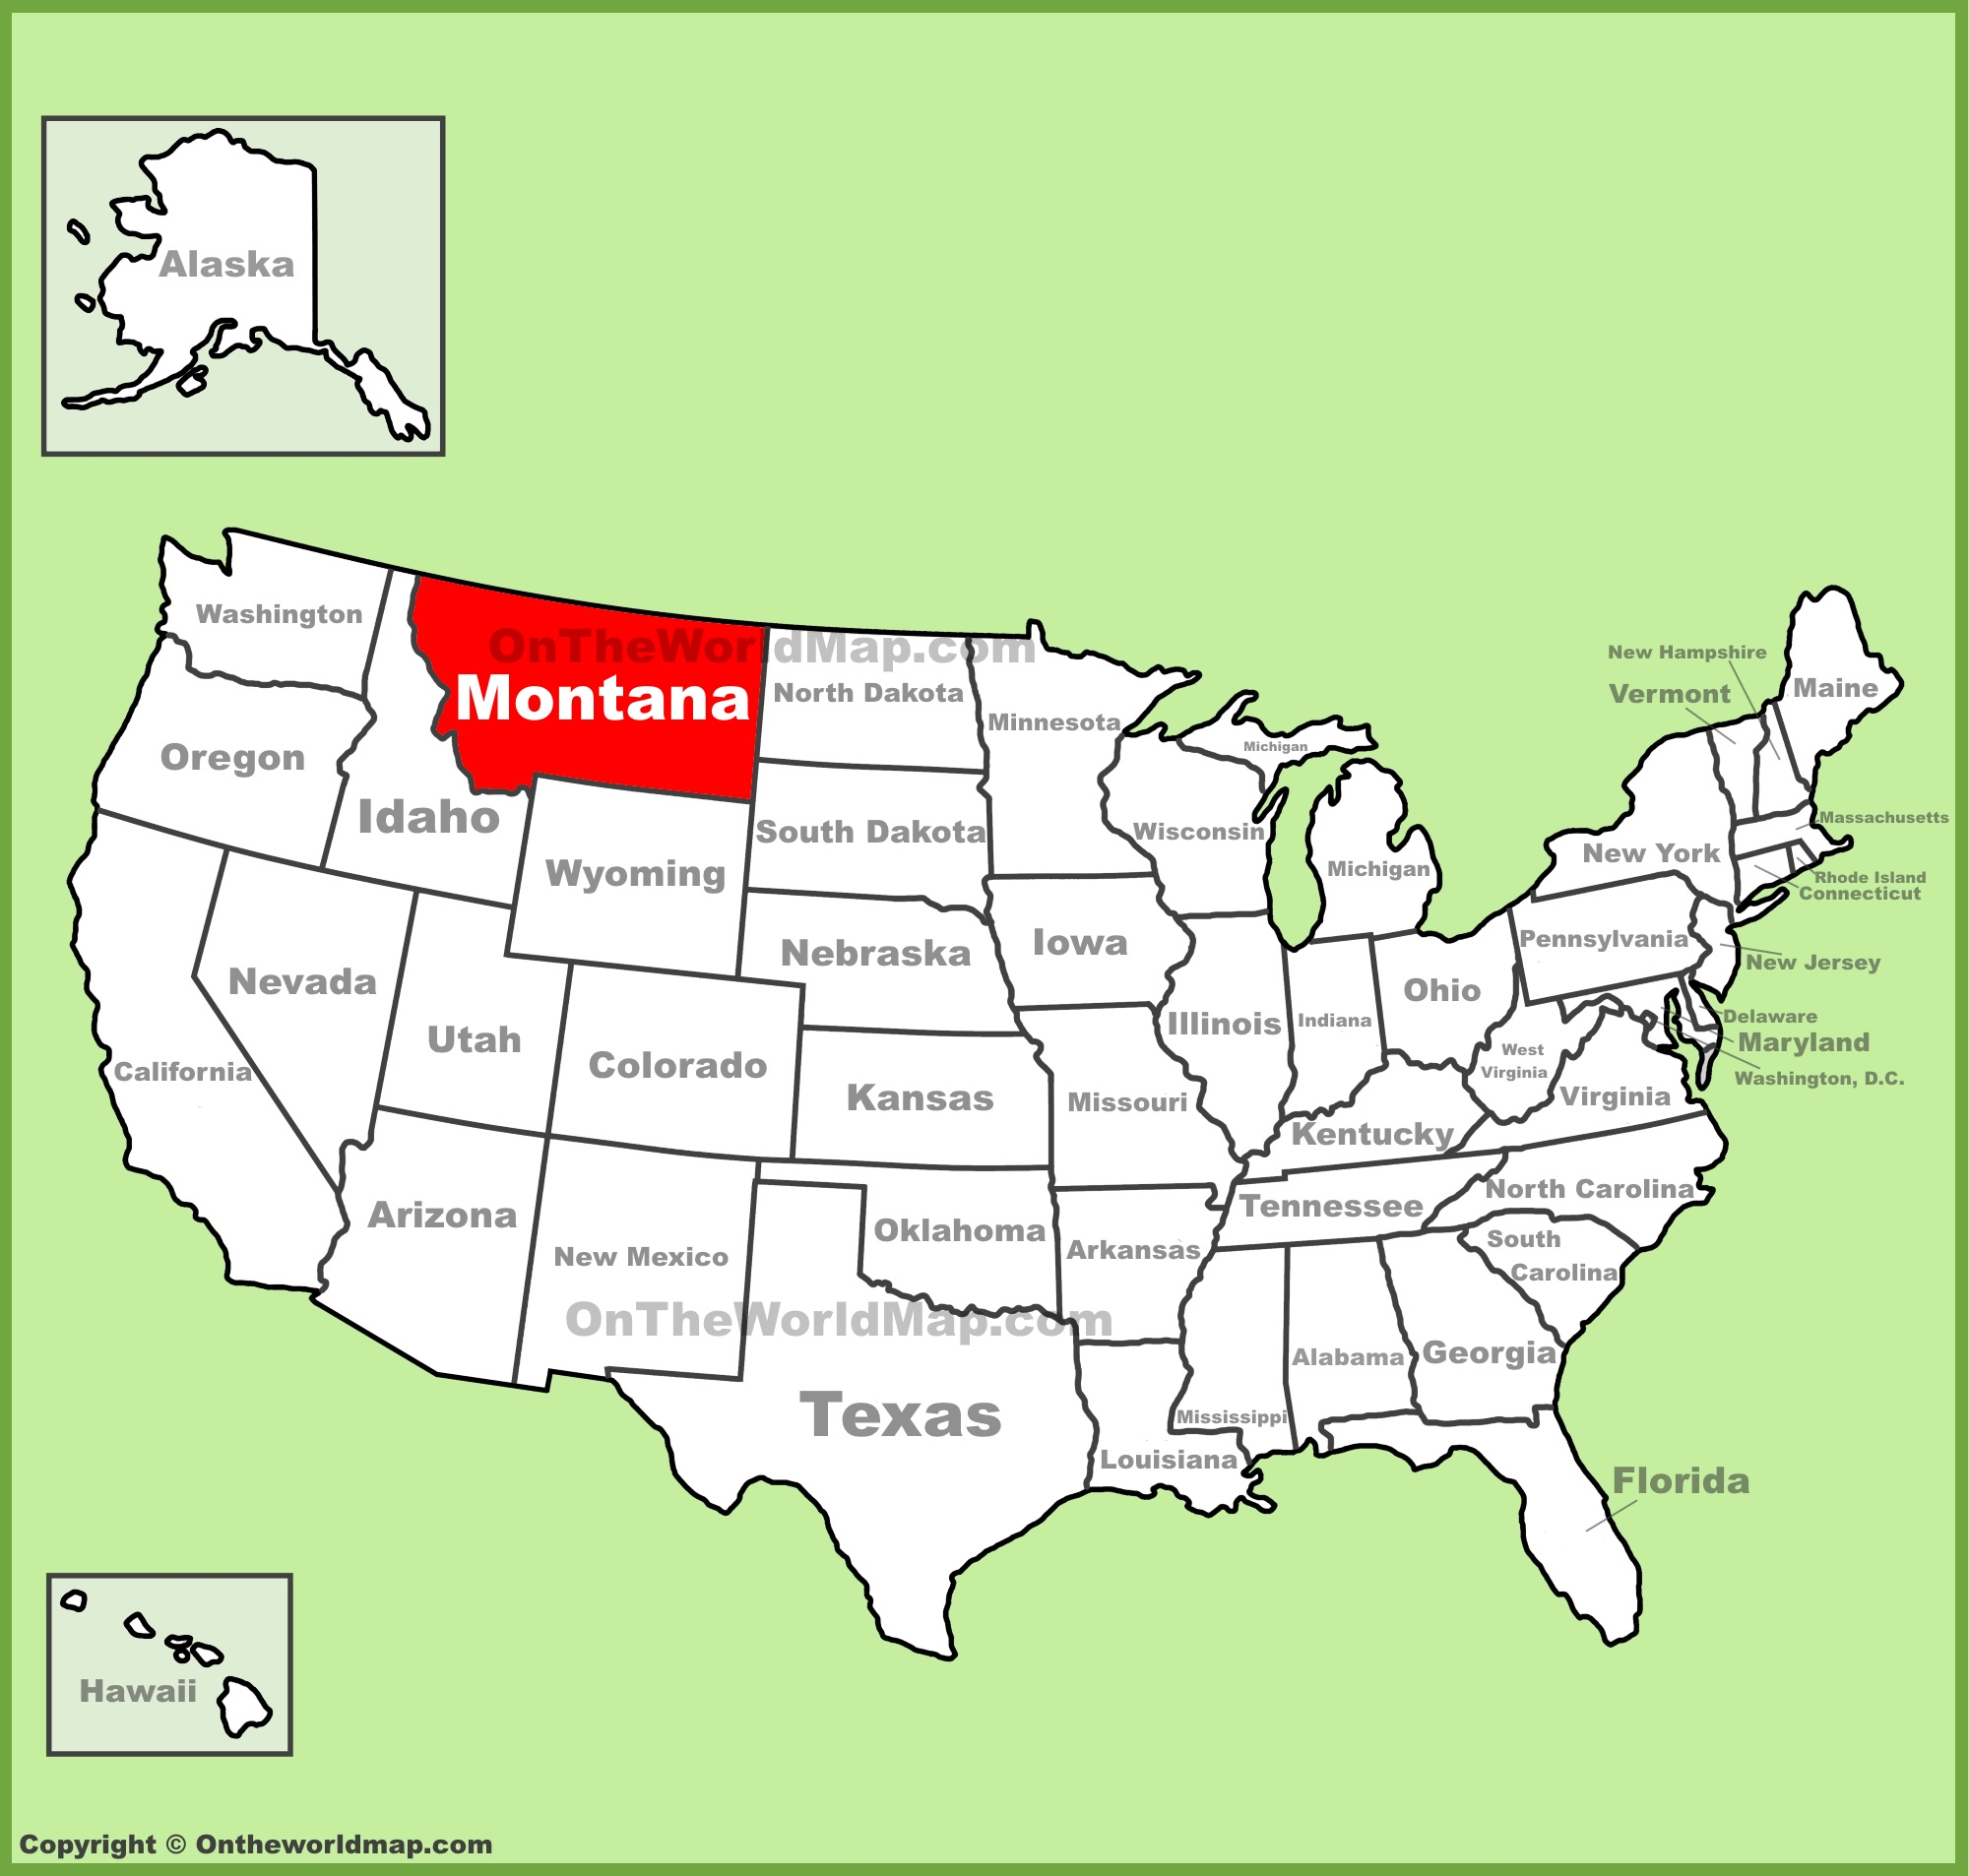 Montana Location On The US Map - Montana us map